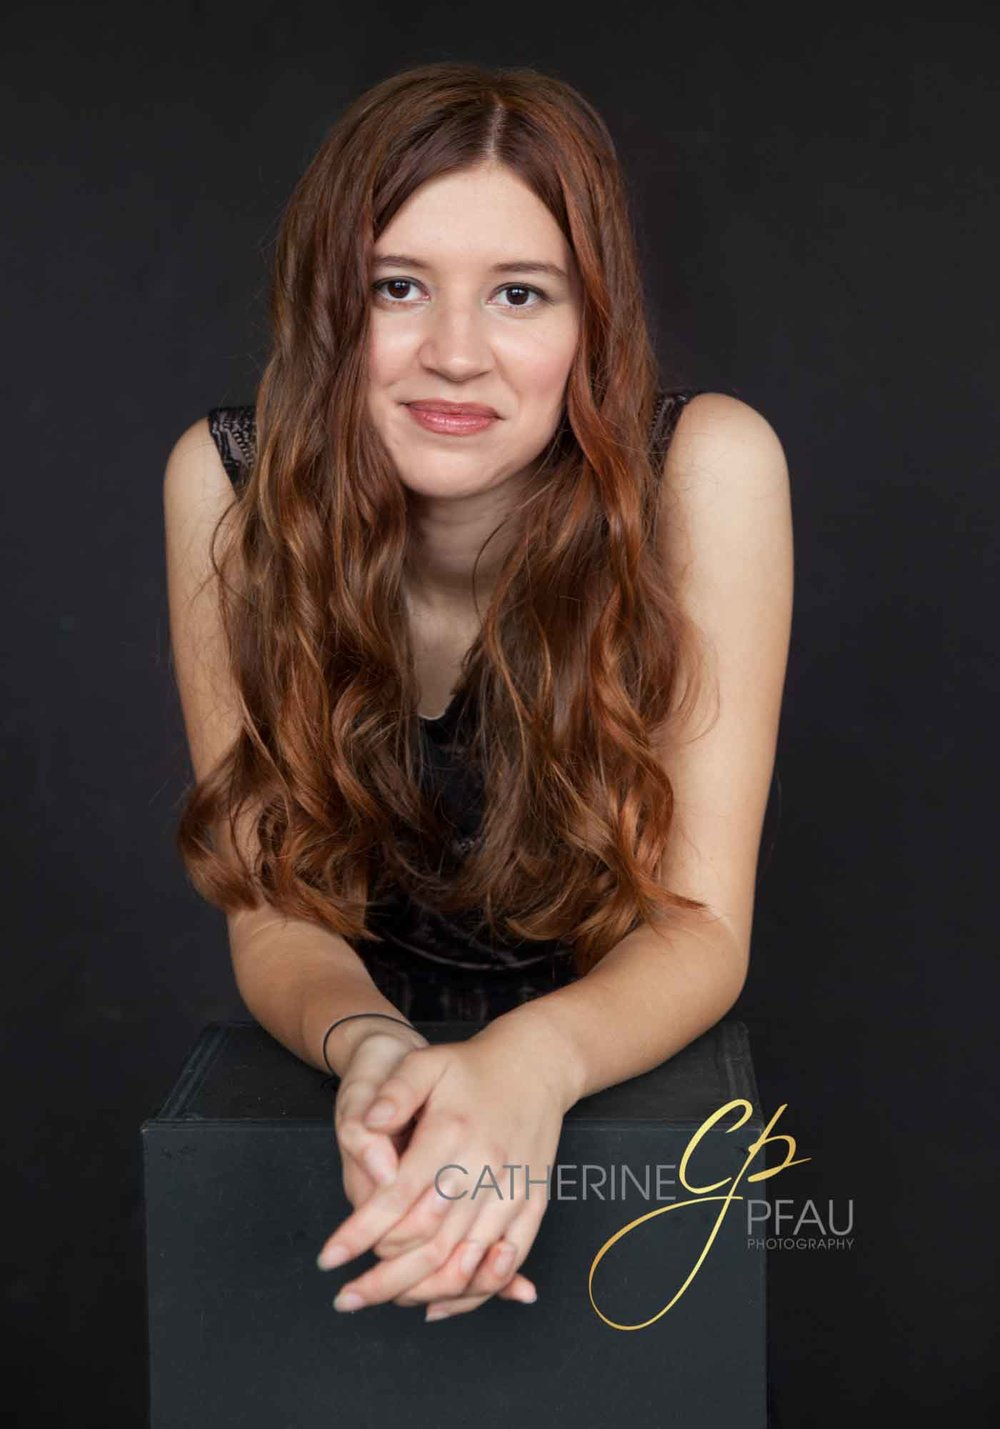 catherinepfau_photography_contemporaryportrait_seniorportrait_13_thumb.jpg